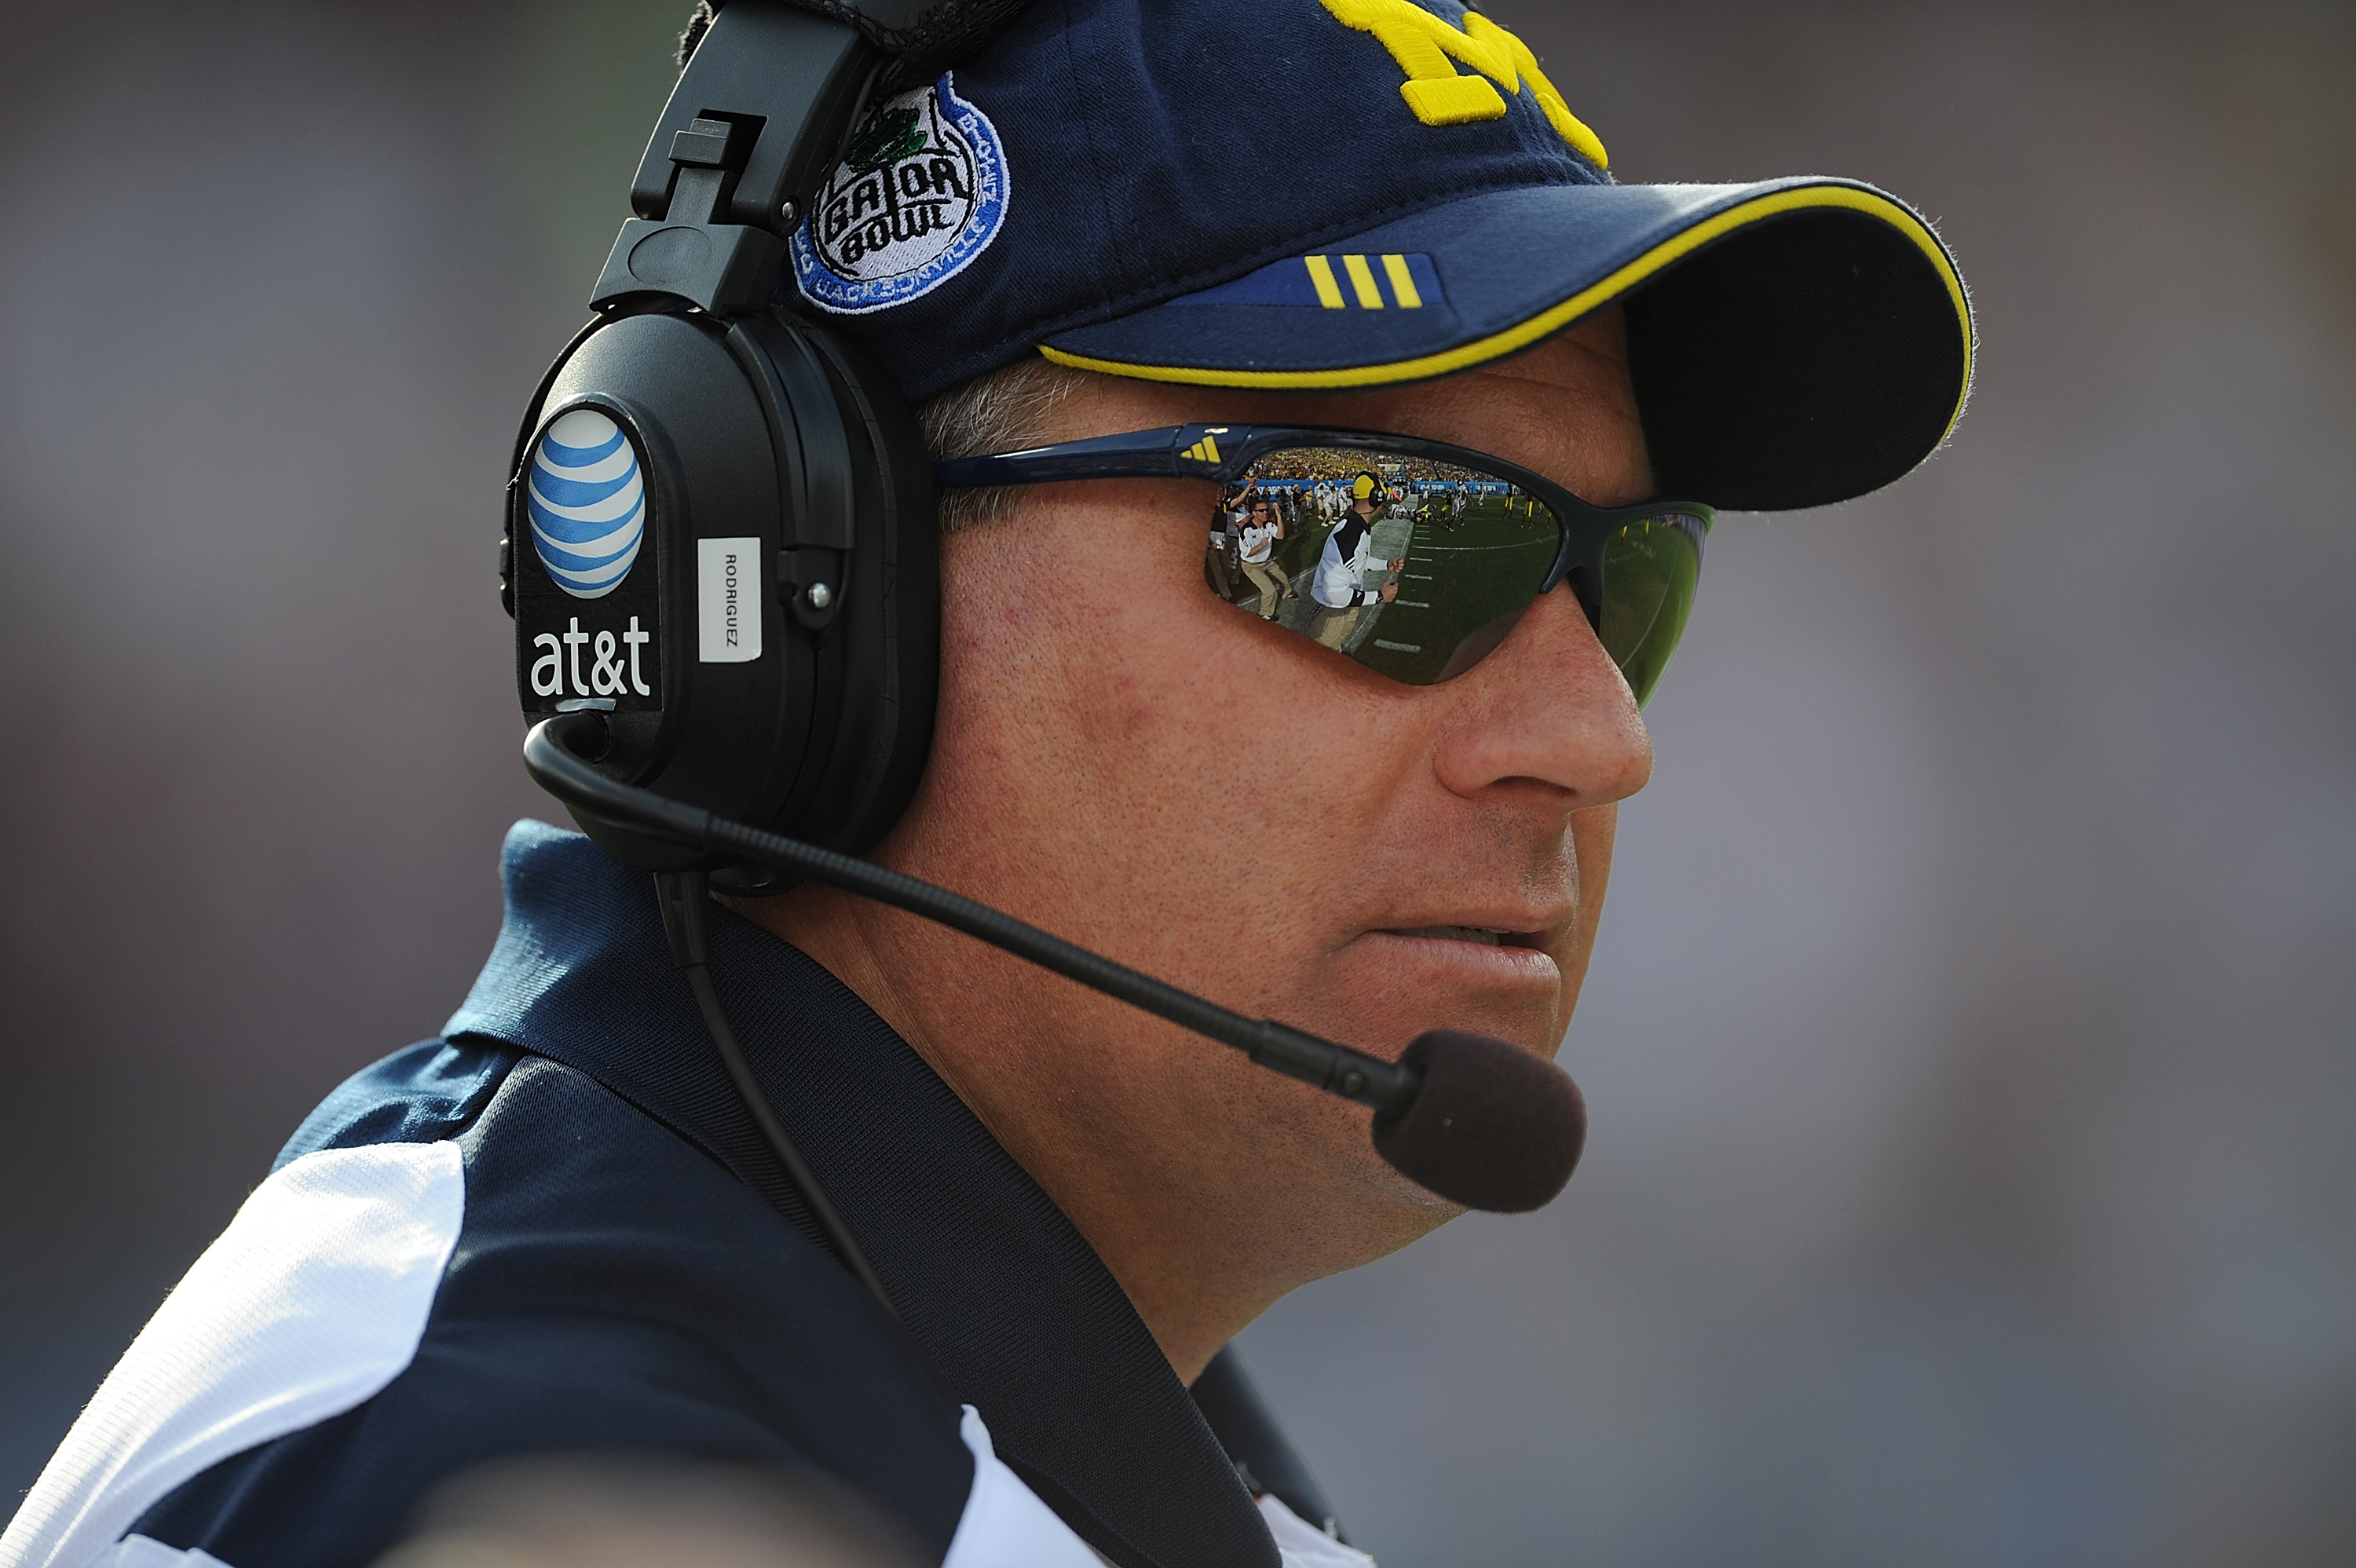 JACKSONVILLE, FL - JANUARY 01:  Head Coach Rich Rodriguez of the University of Michigan Wolverines during the Gator Bowl at EverBank Field on January 1, 2011 in Jacksonville, Florida  (Photo by Rick Dole/Getty Images)